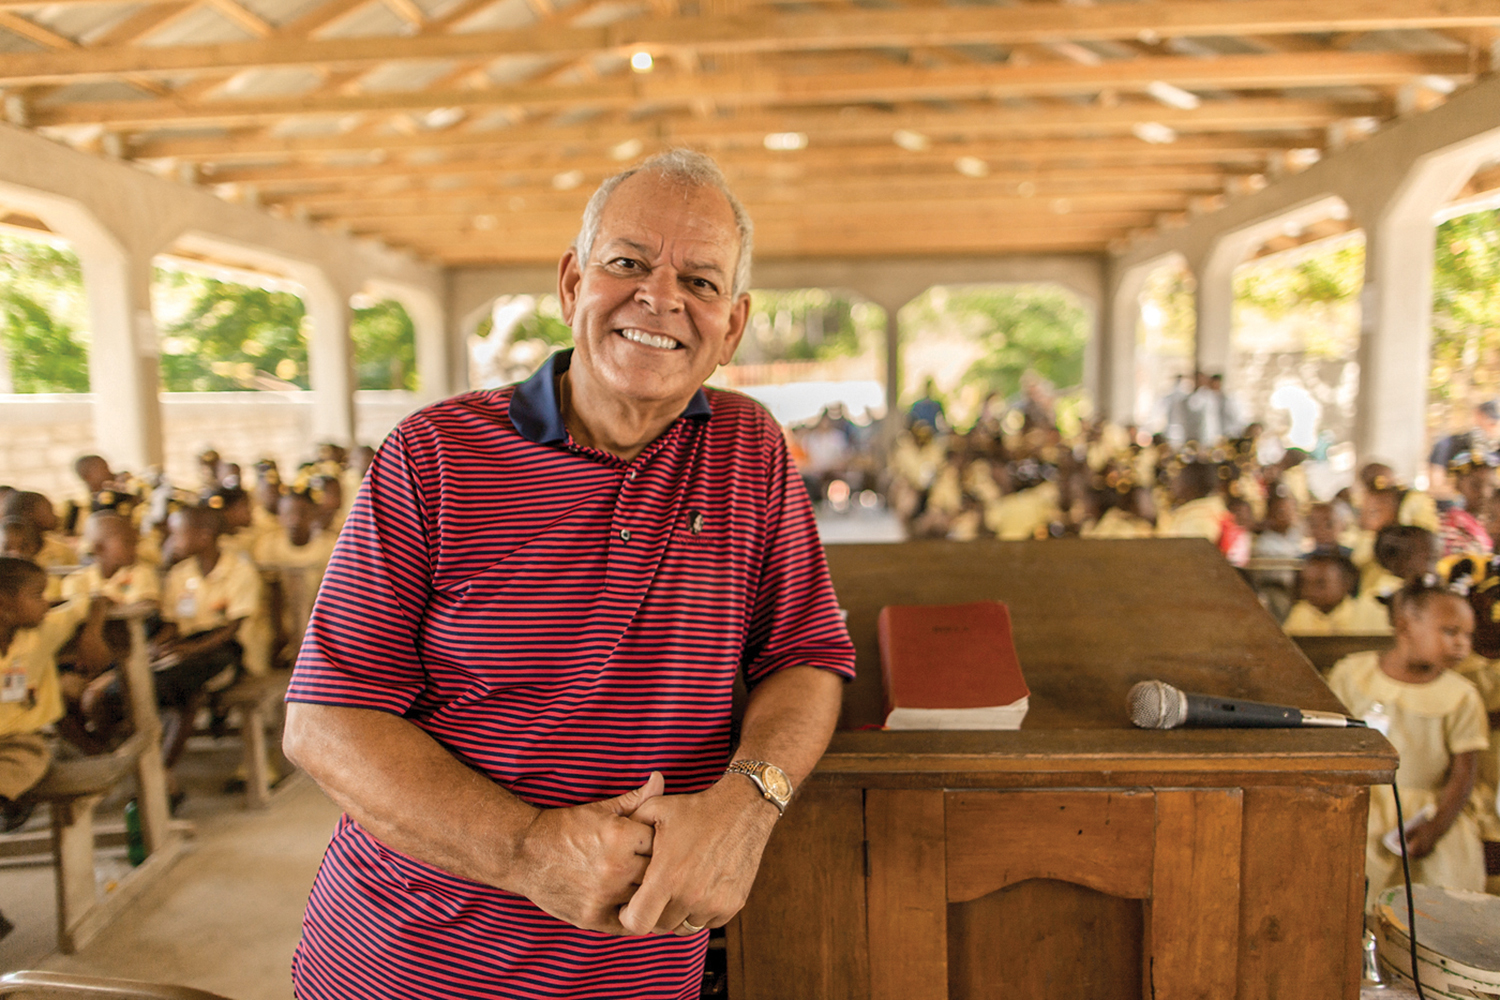 Thank you Pastor Johnny Hunt from First Baptist Church Woodstock in helping to build two churches in Haiti: Tom Gateau and Decouze.